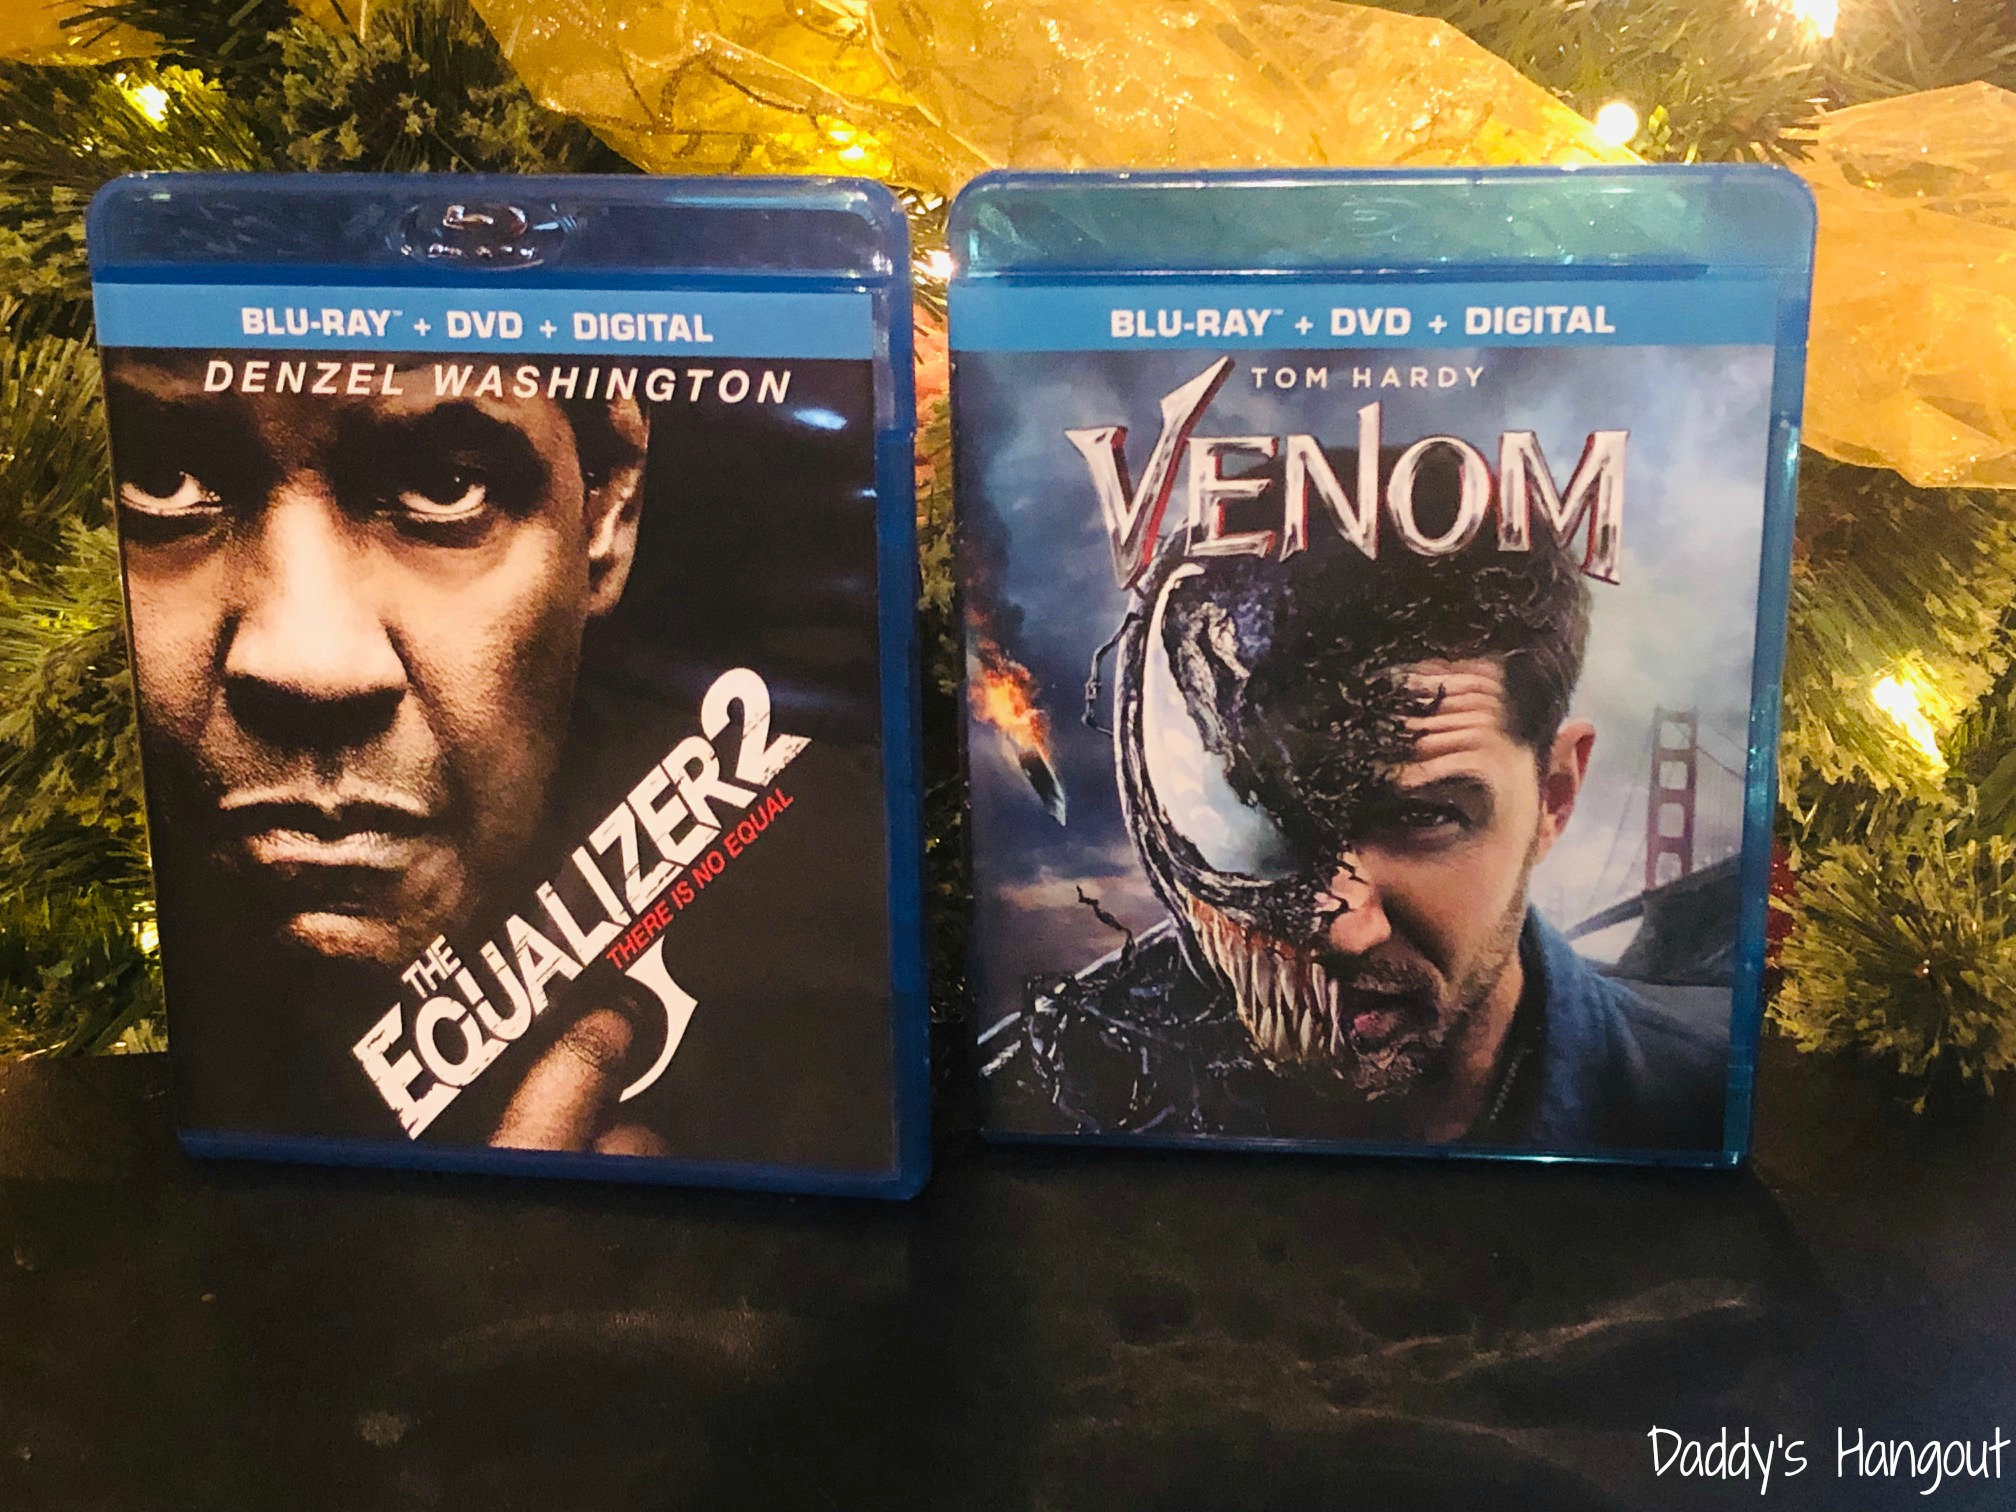 Add 2 Great Movies from Walmart To Your Christmas List